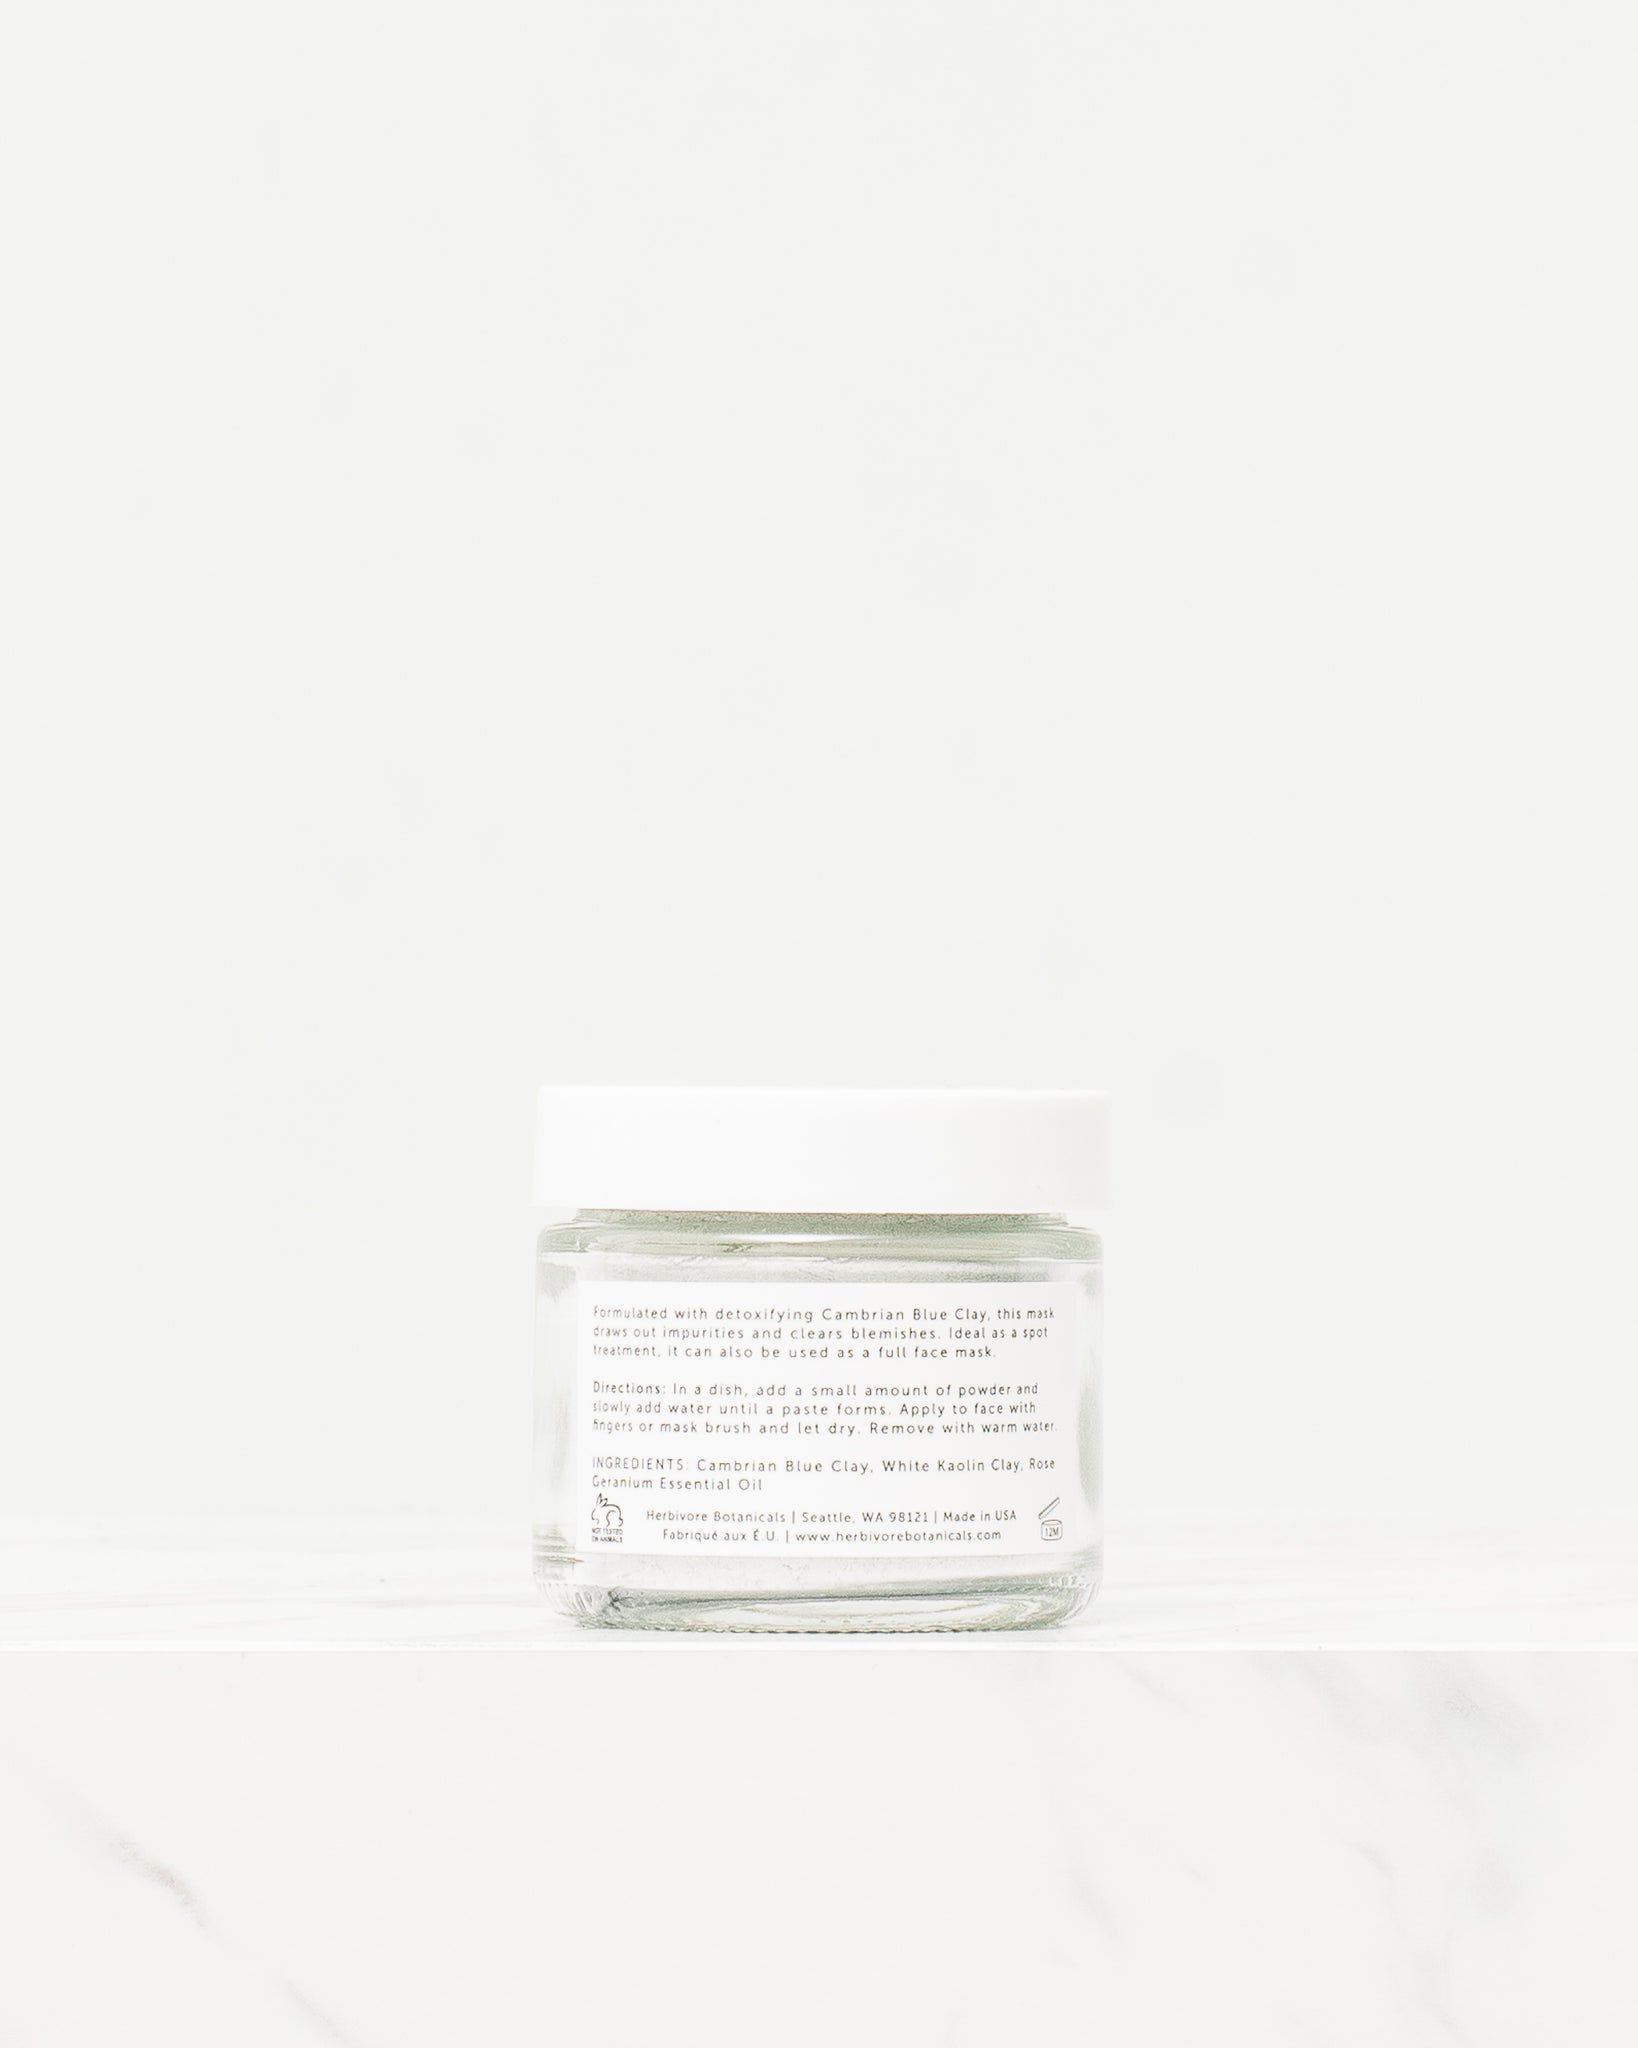 Herbivore Botanicals Blue Clay Spot Treatment Dry Mask